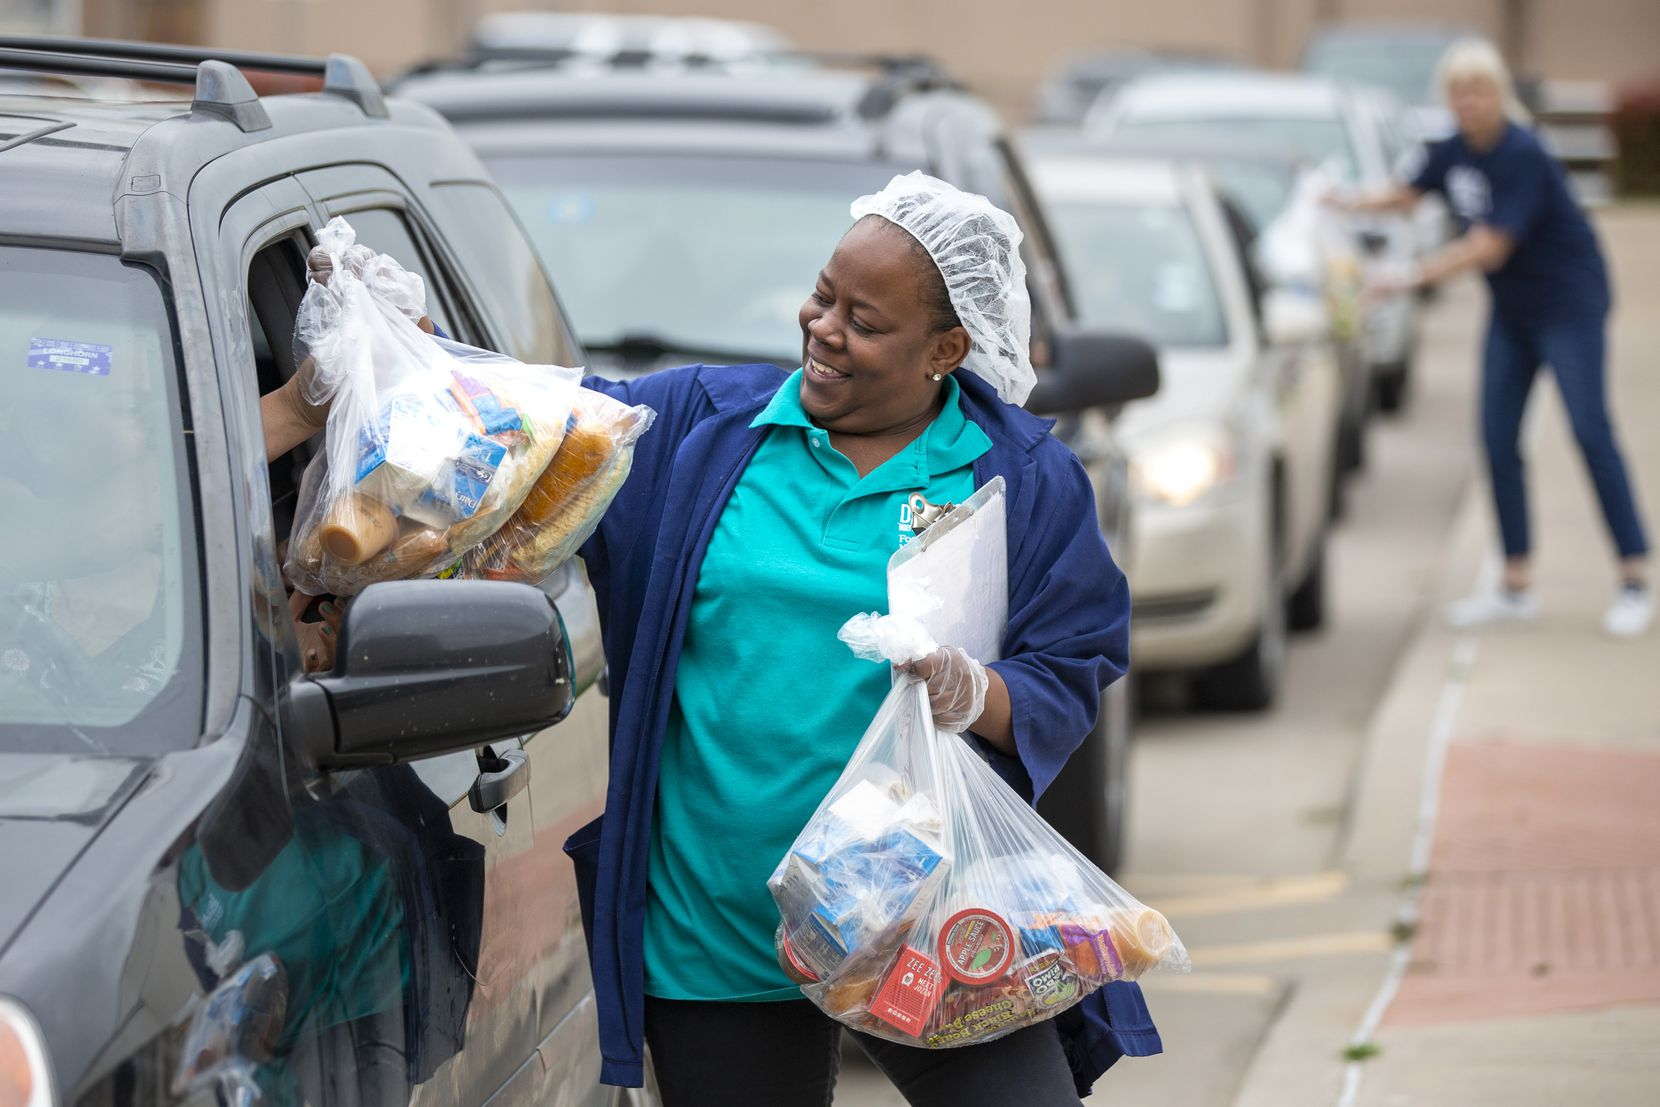 Food service supervisor Latoncia Anderson distributes meals.